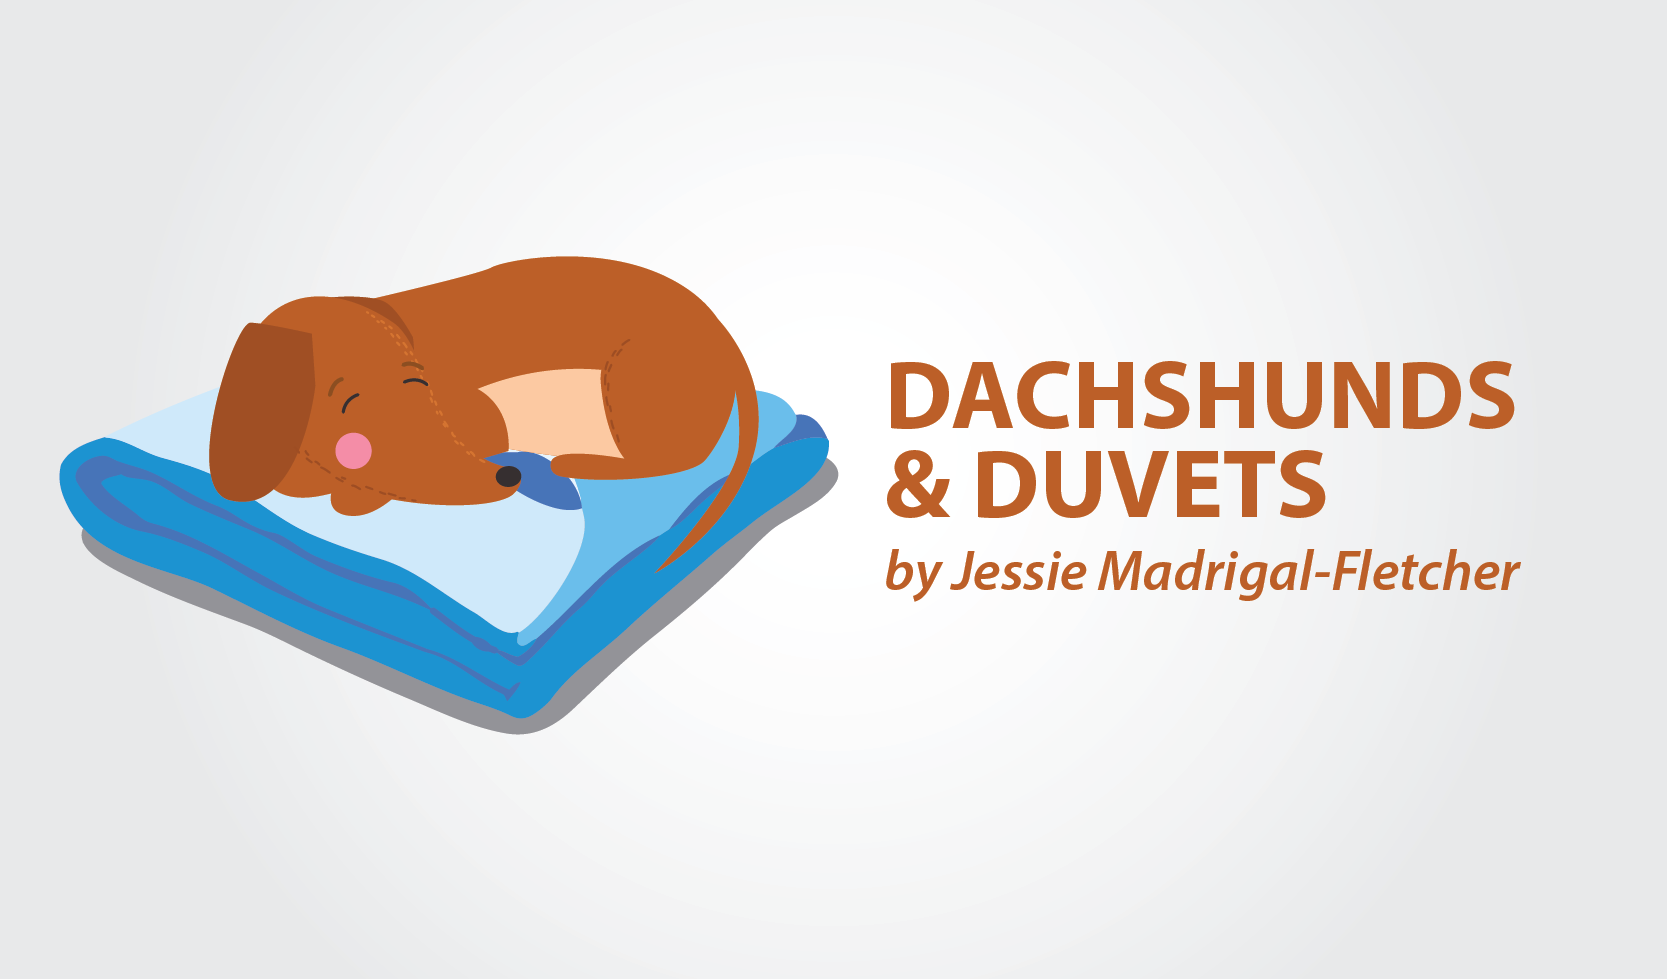 Dachshunds & Duvets – a column by Jessie Madrigal-Fletcher